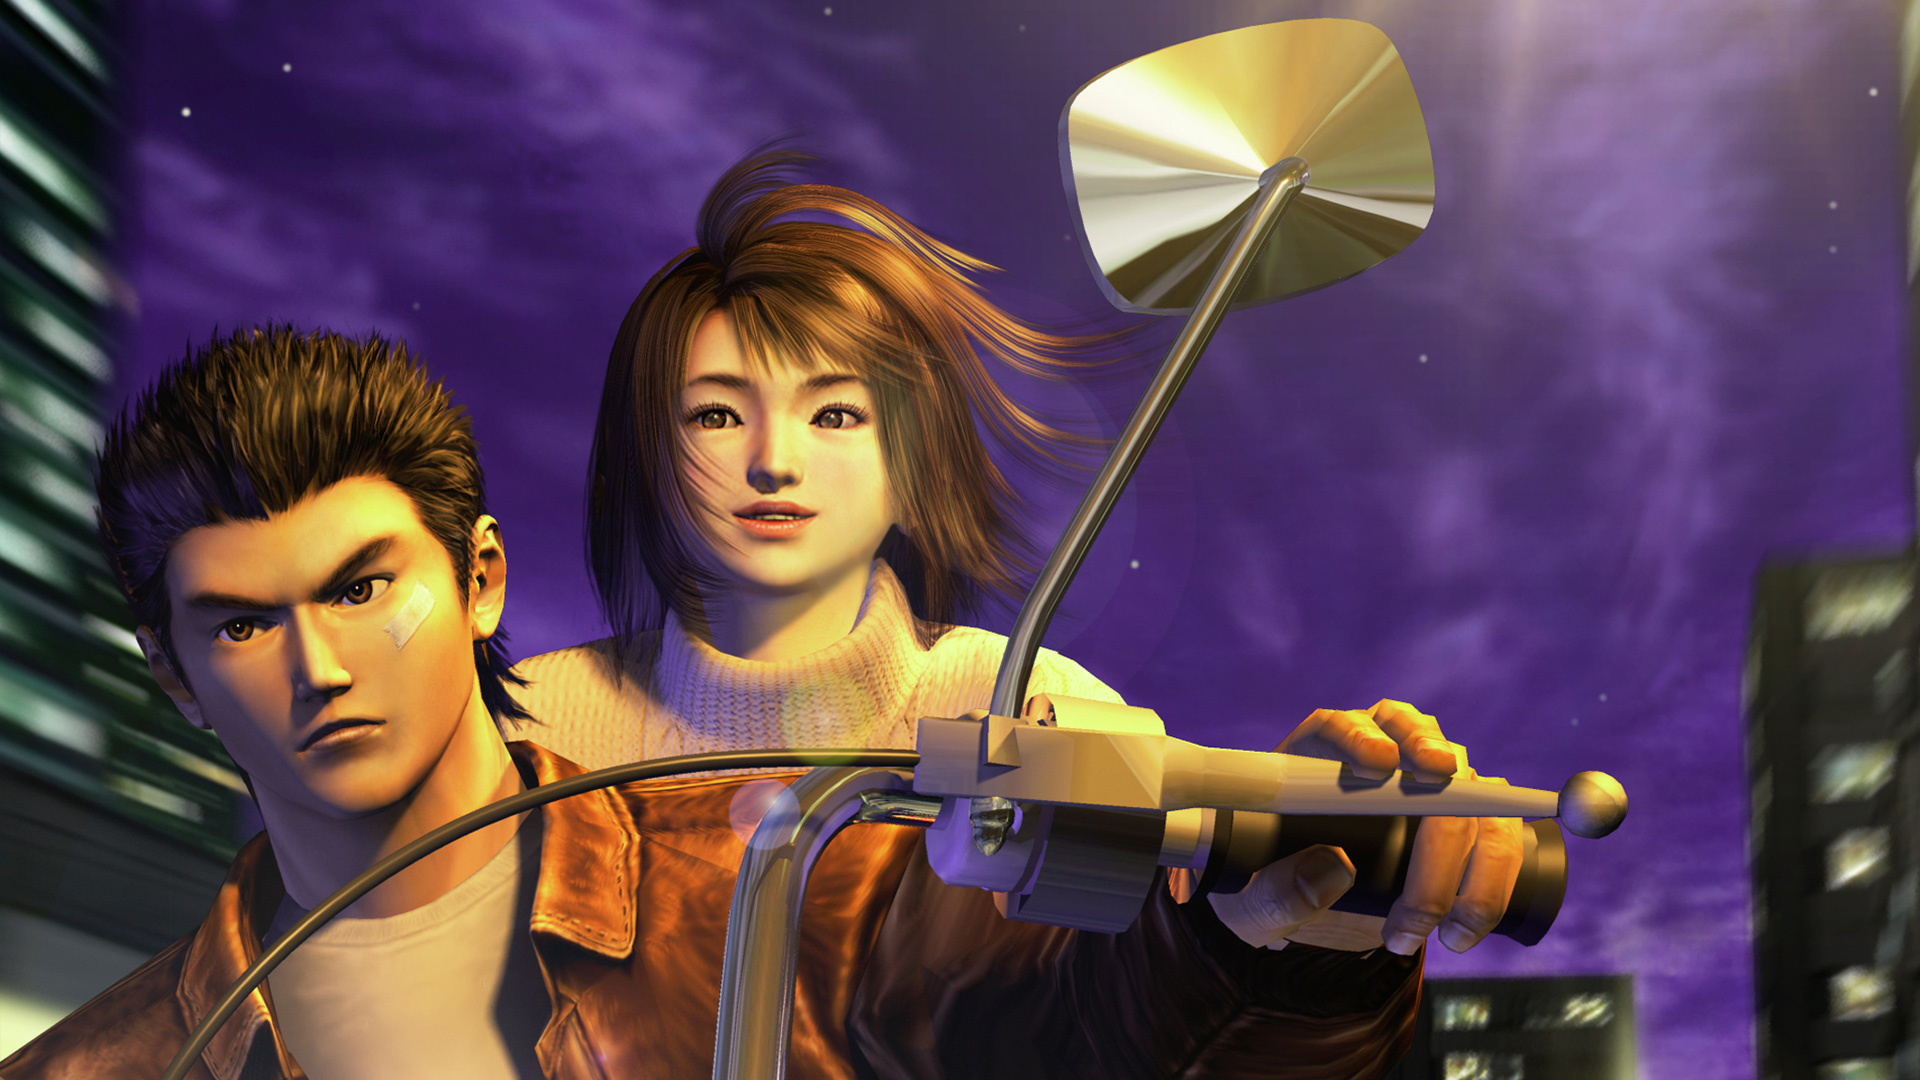 Oh Boy, Sony Hears Your Pleas for Shenmue on PlayStation - Push Square